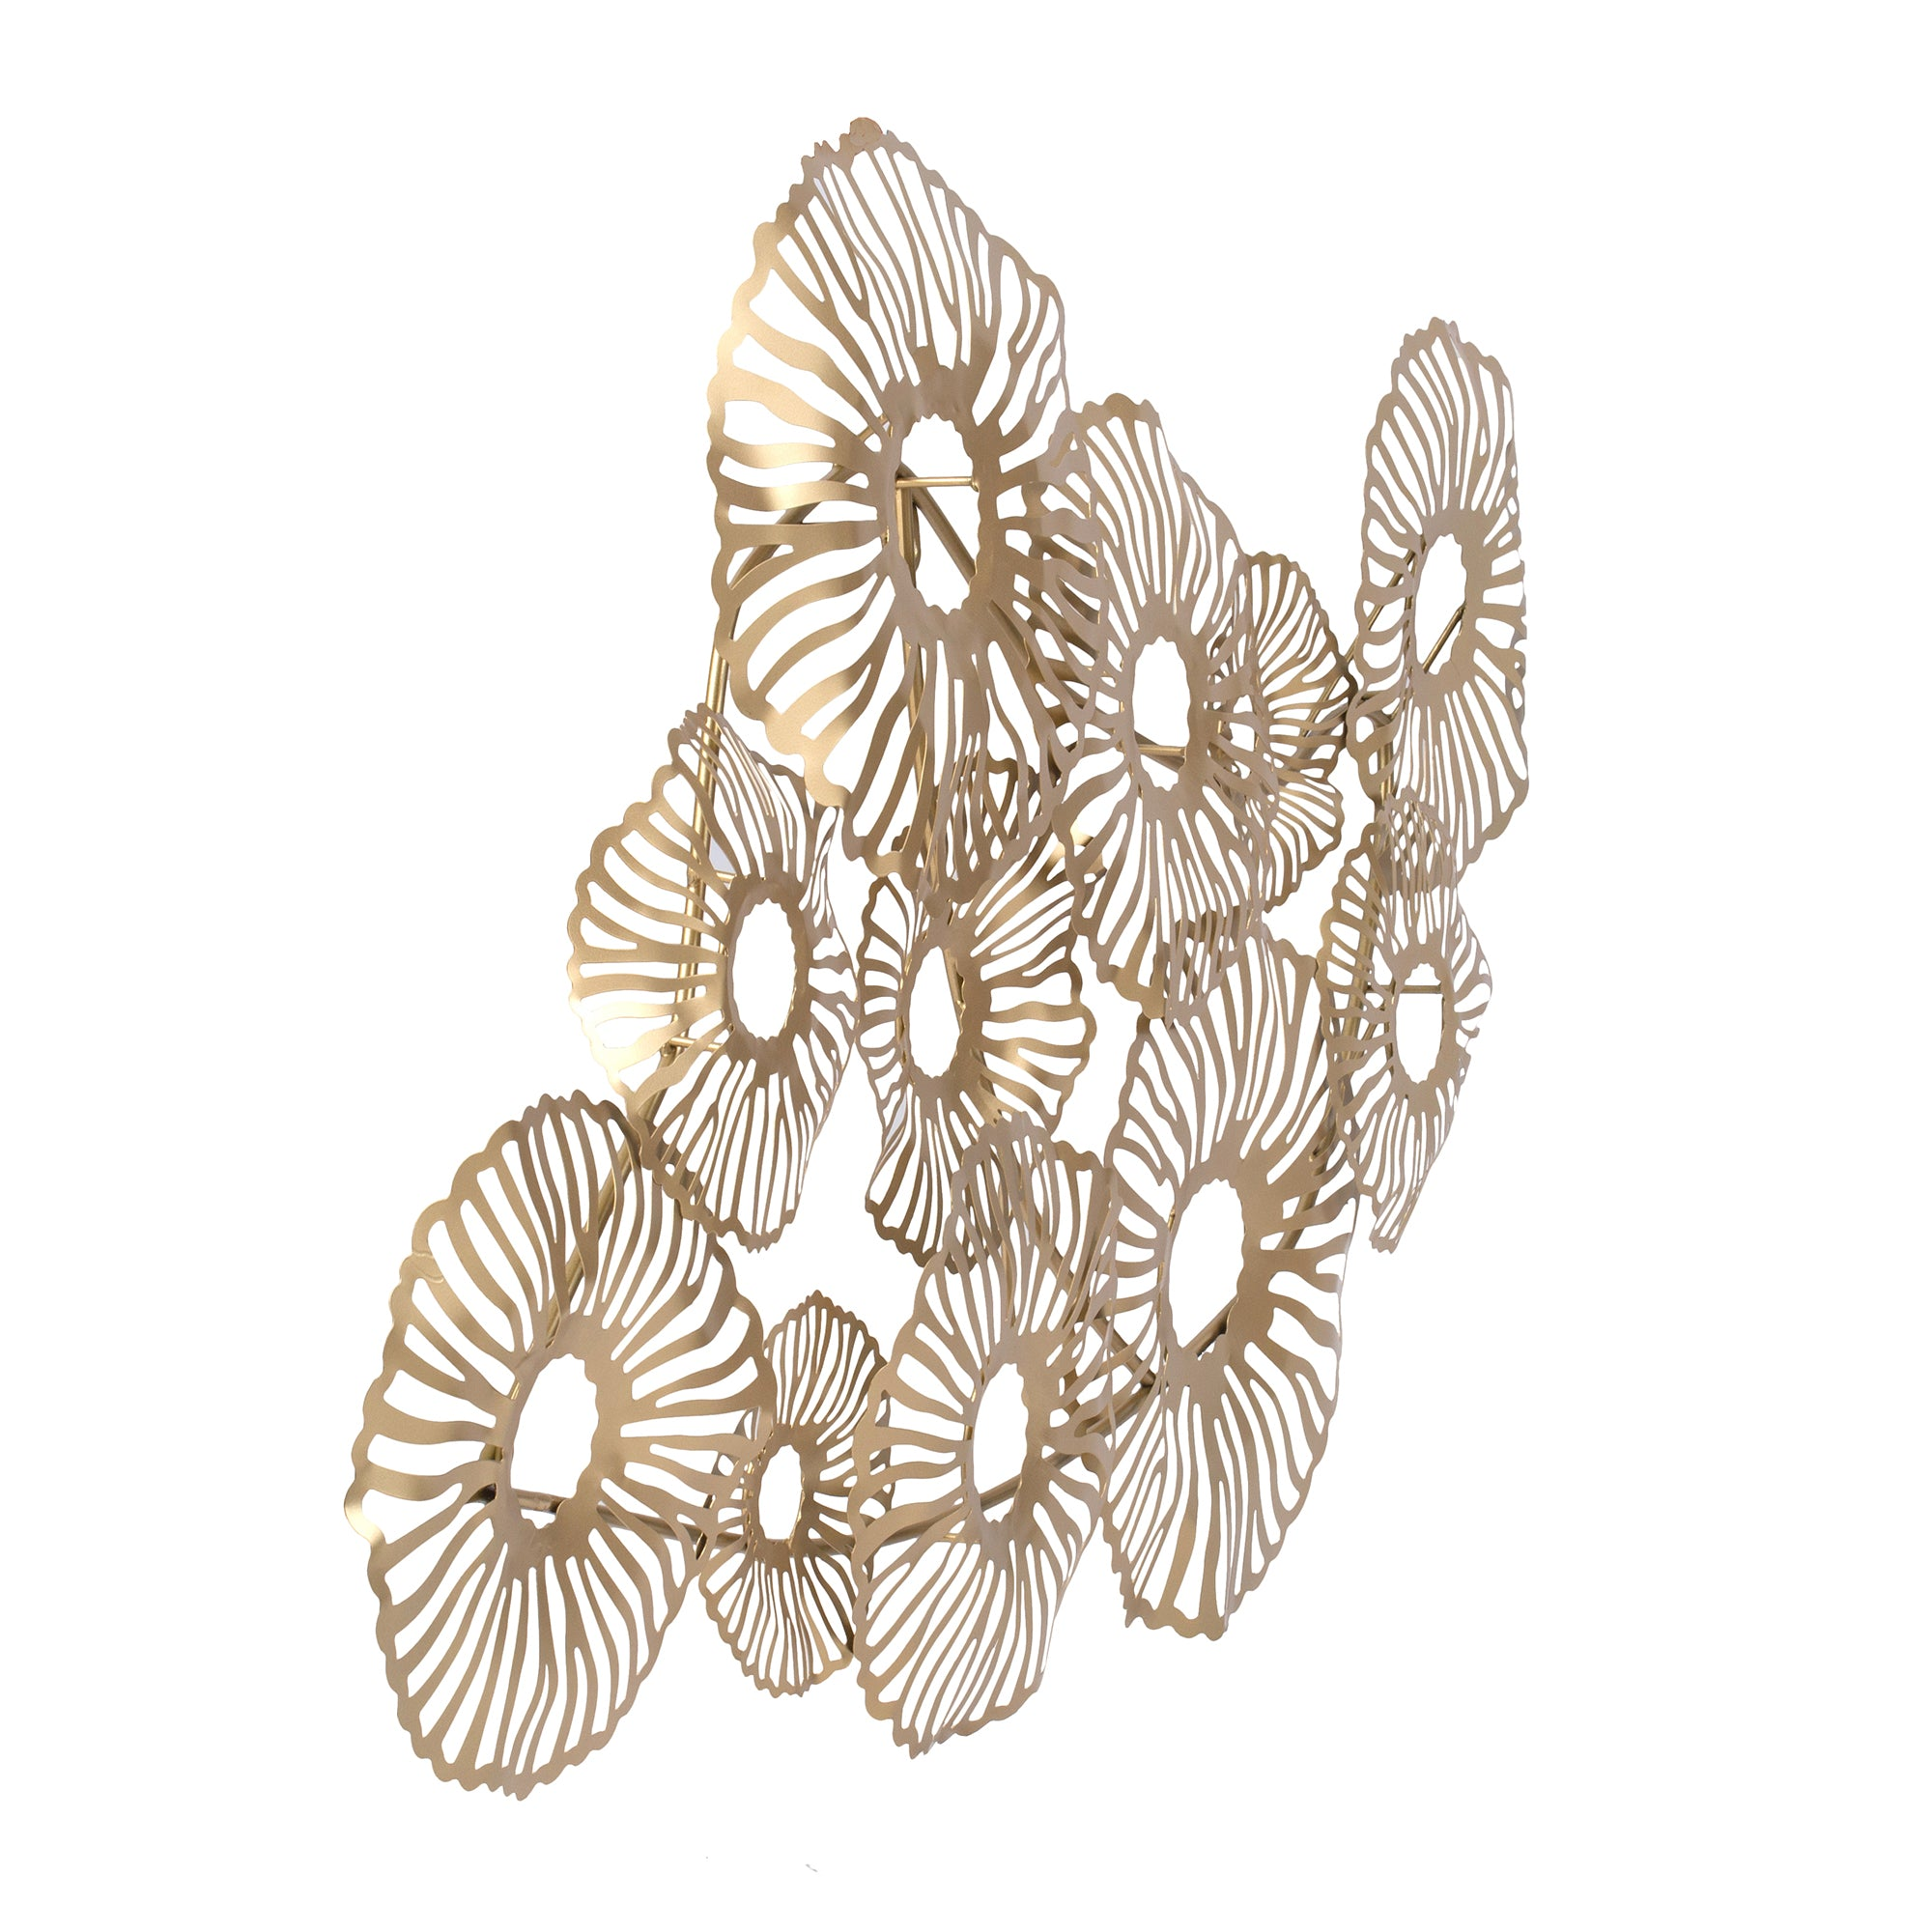 Flower Stencil Wall Art - decorstore